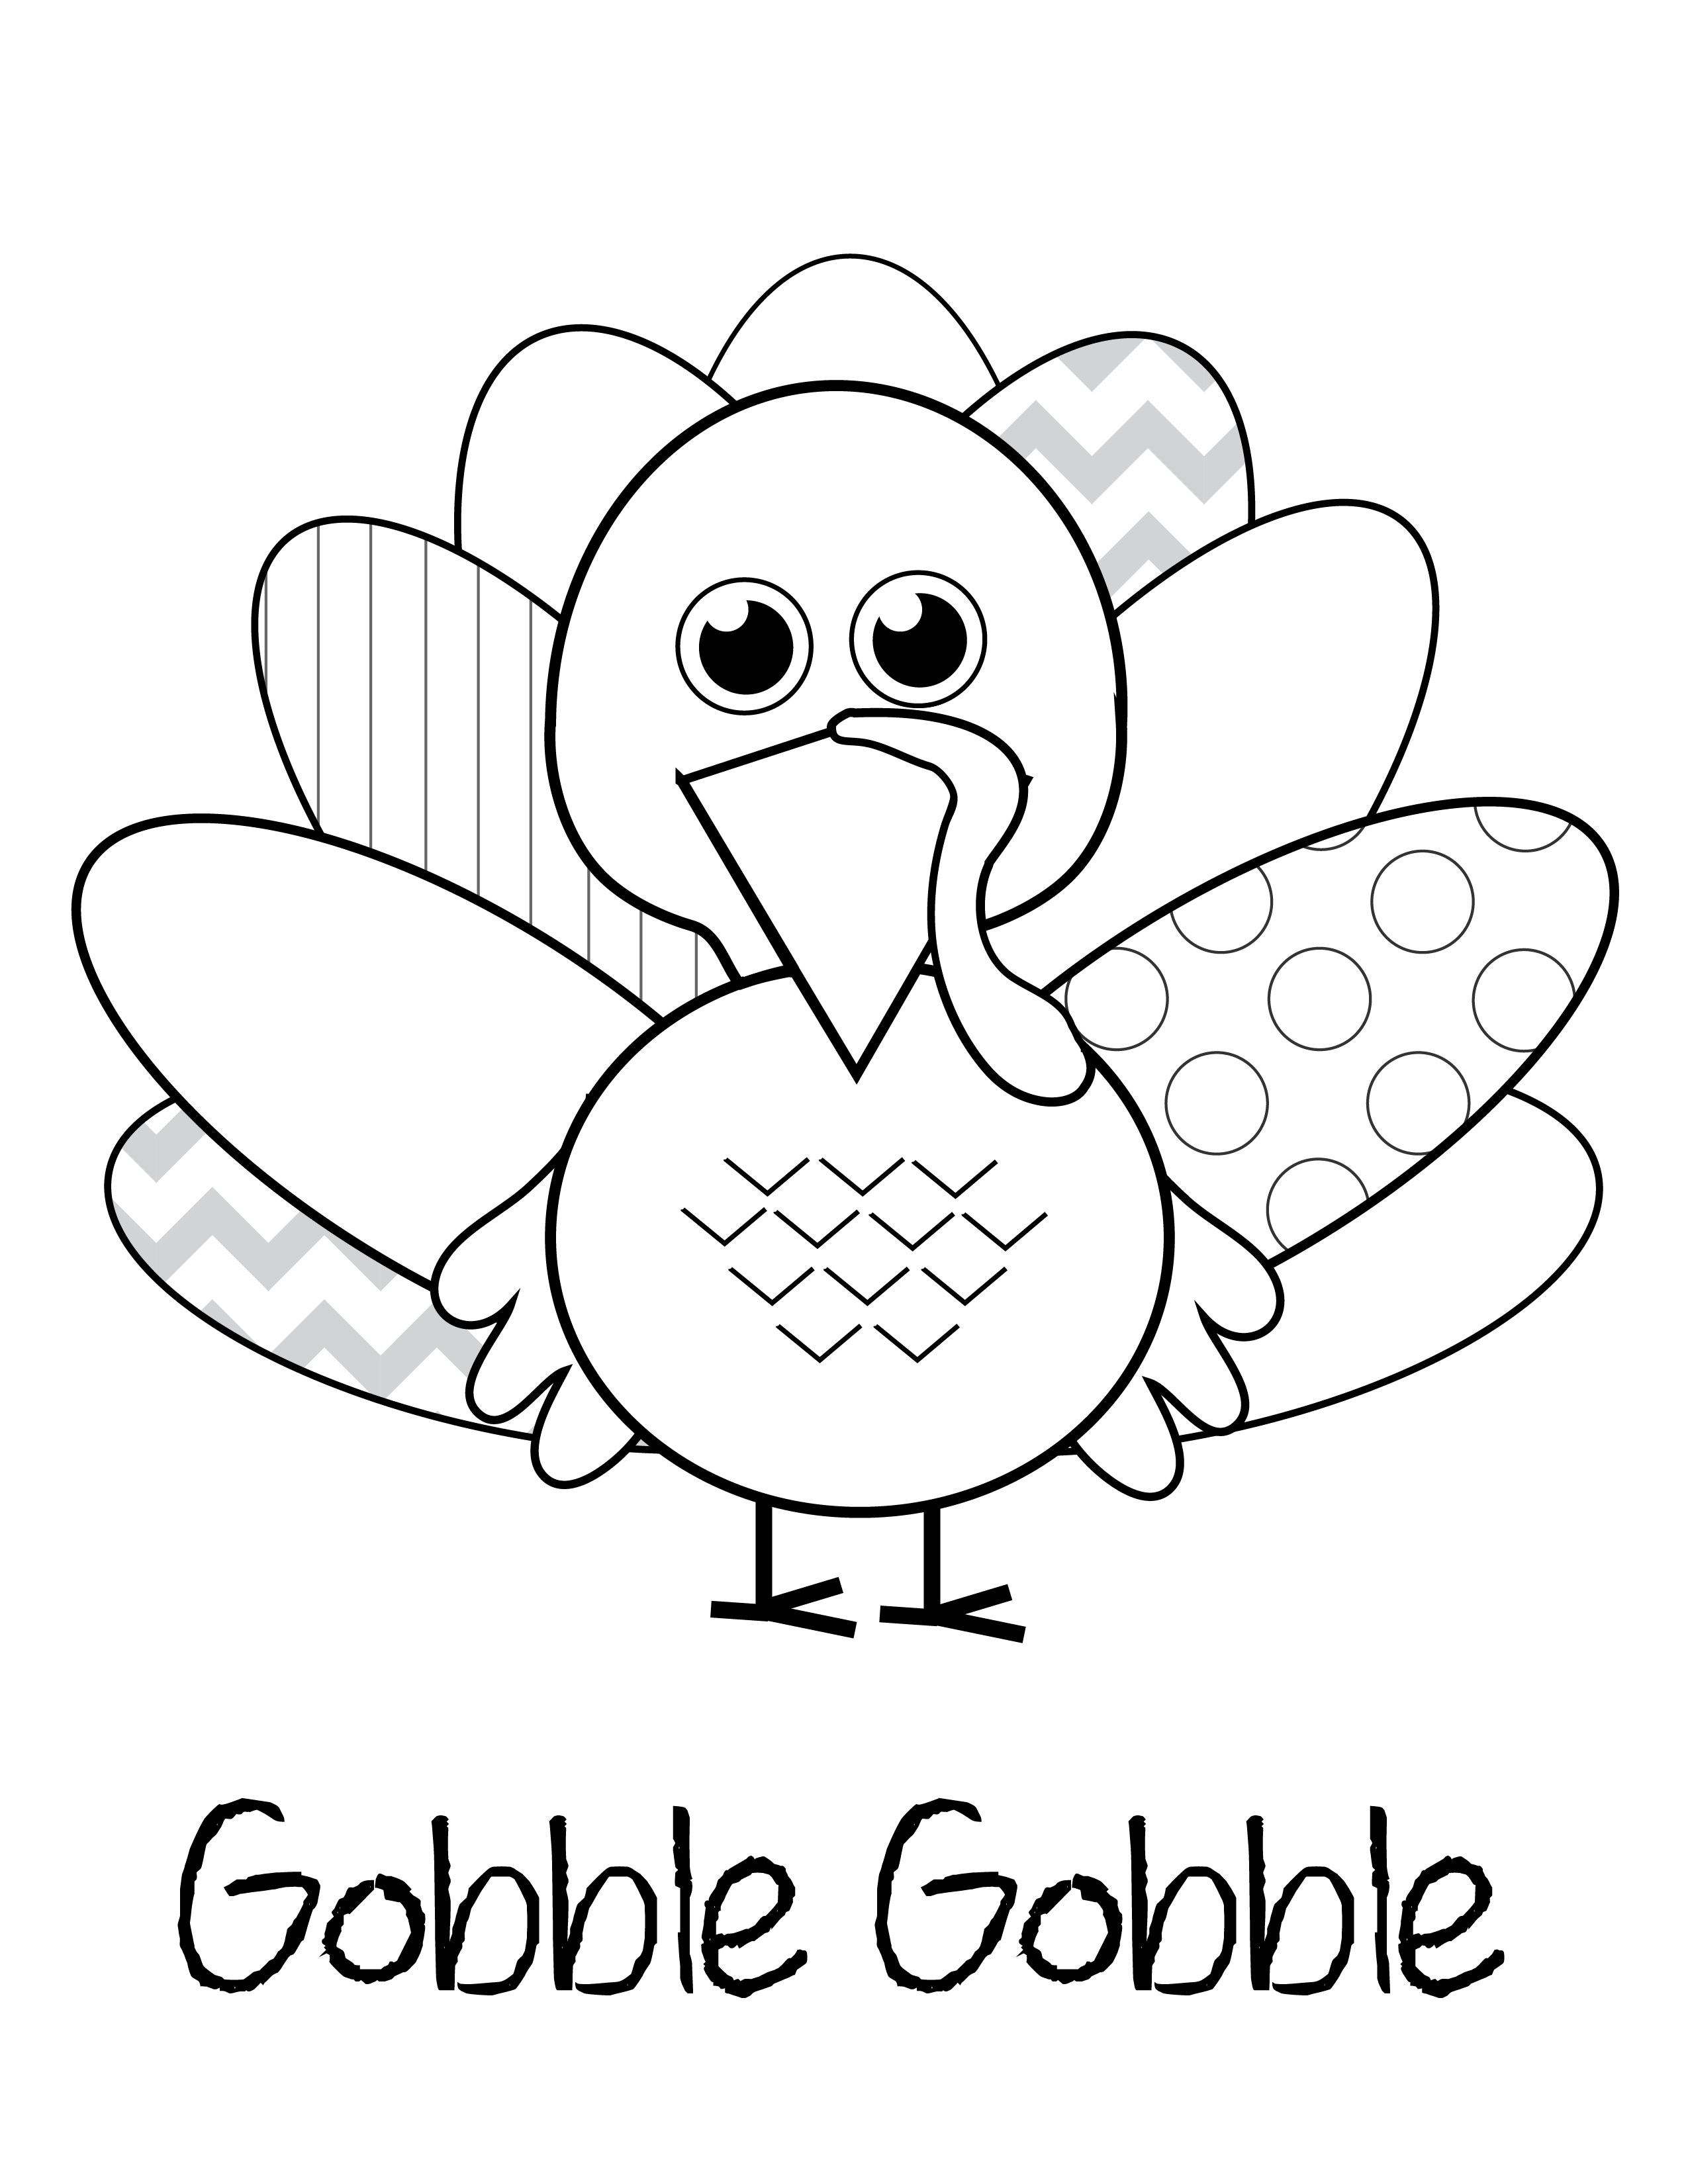 Free Thanksgiving Printables | Printable | Dibujos De Acción De - Free Printable Thanksgiving Activities For Preschoolers